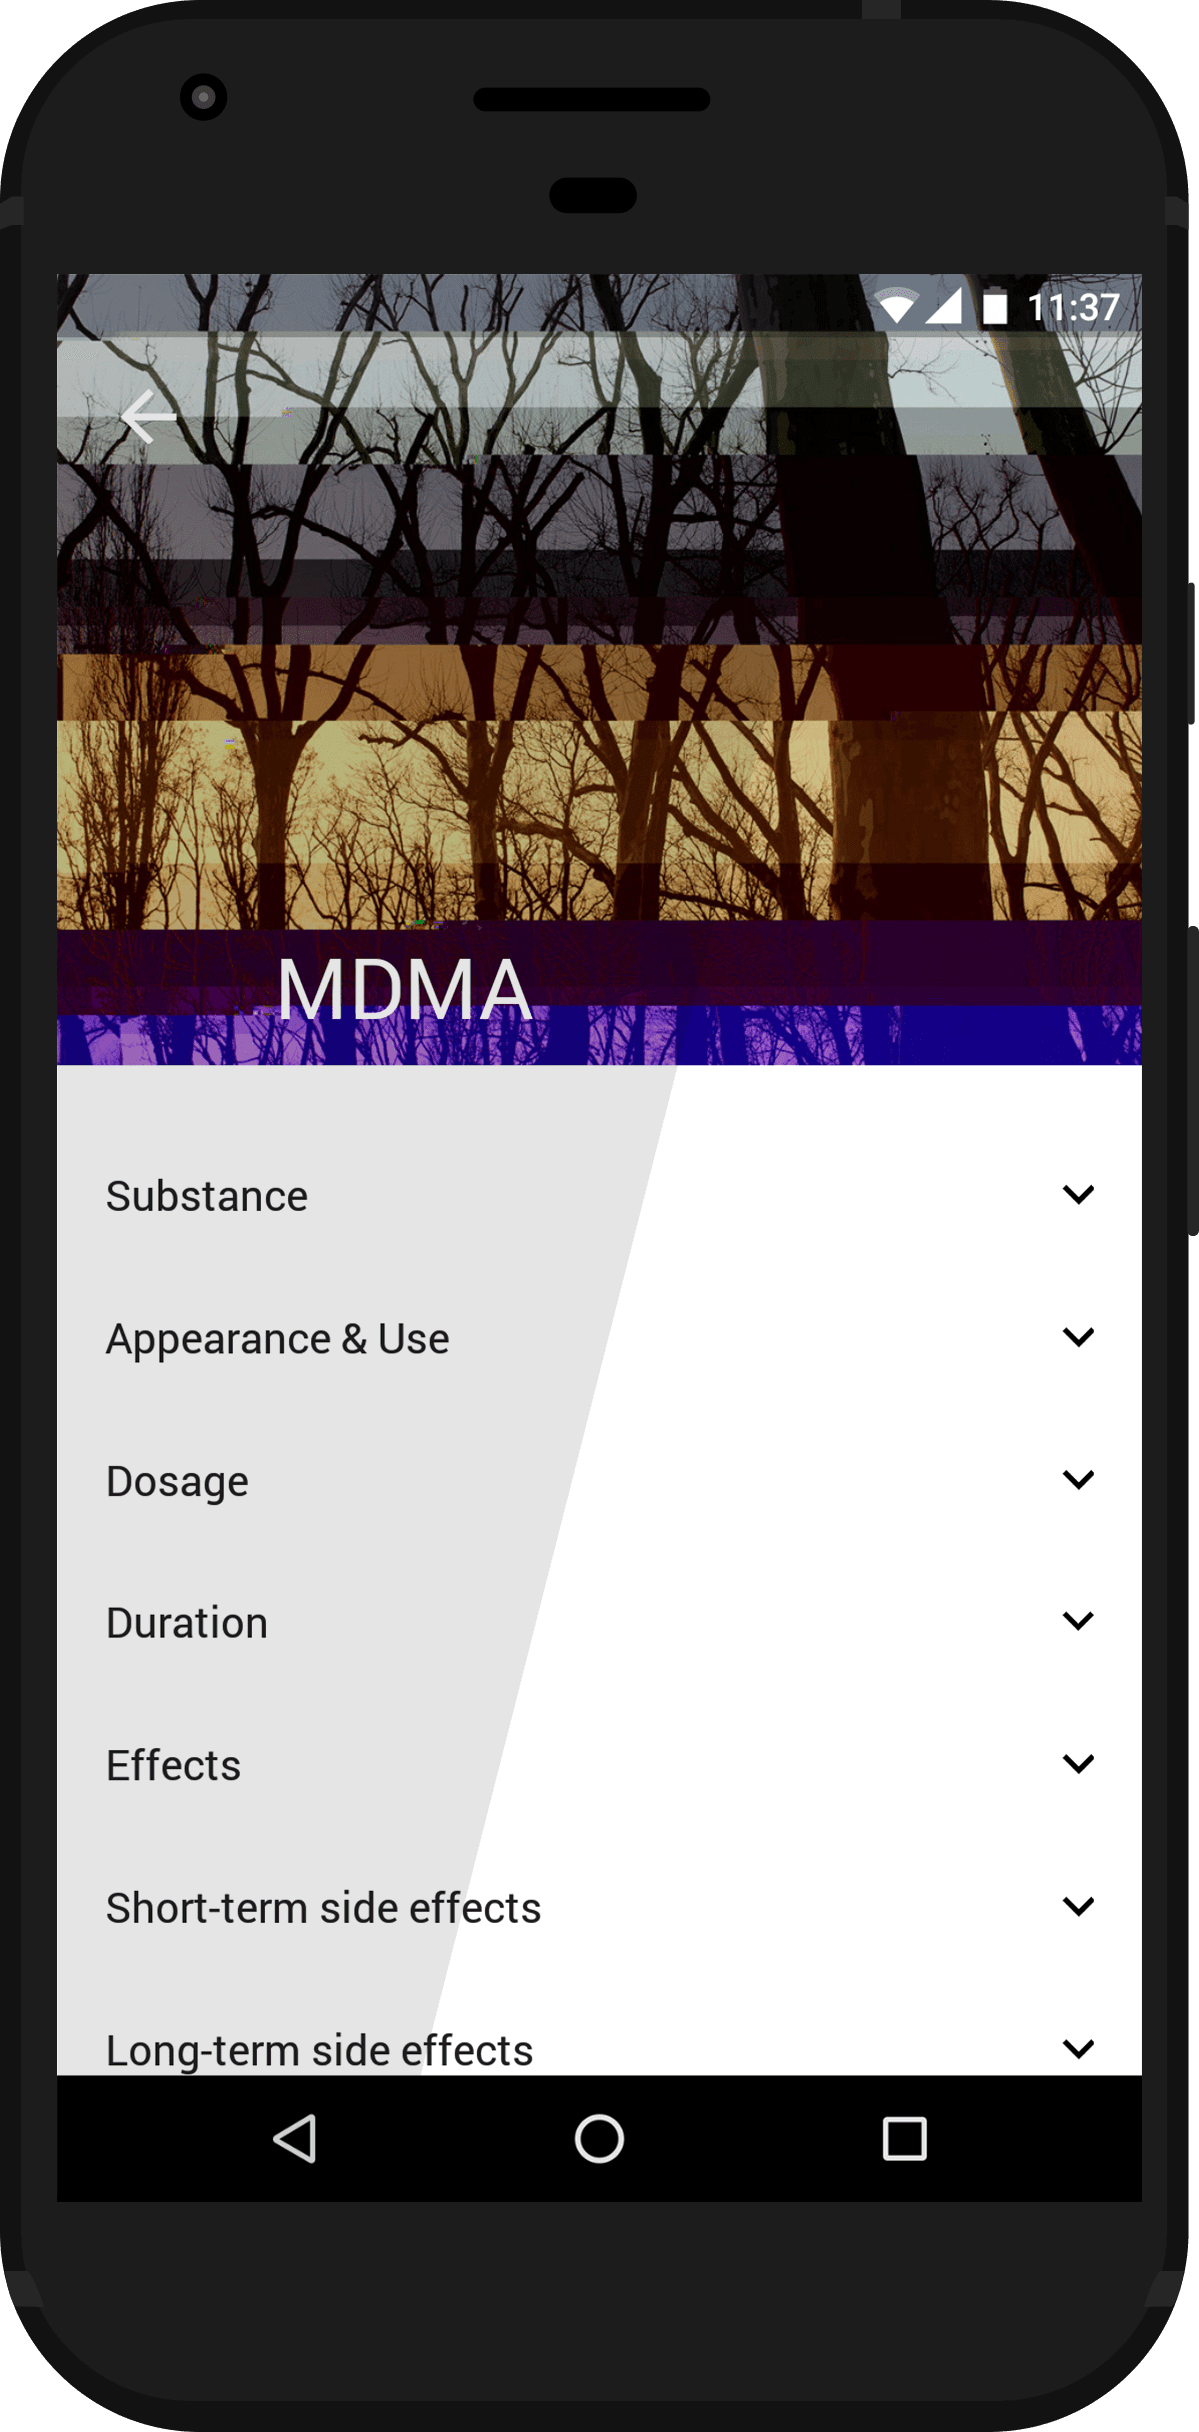 KnowDrugs - substance information MDMA